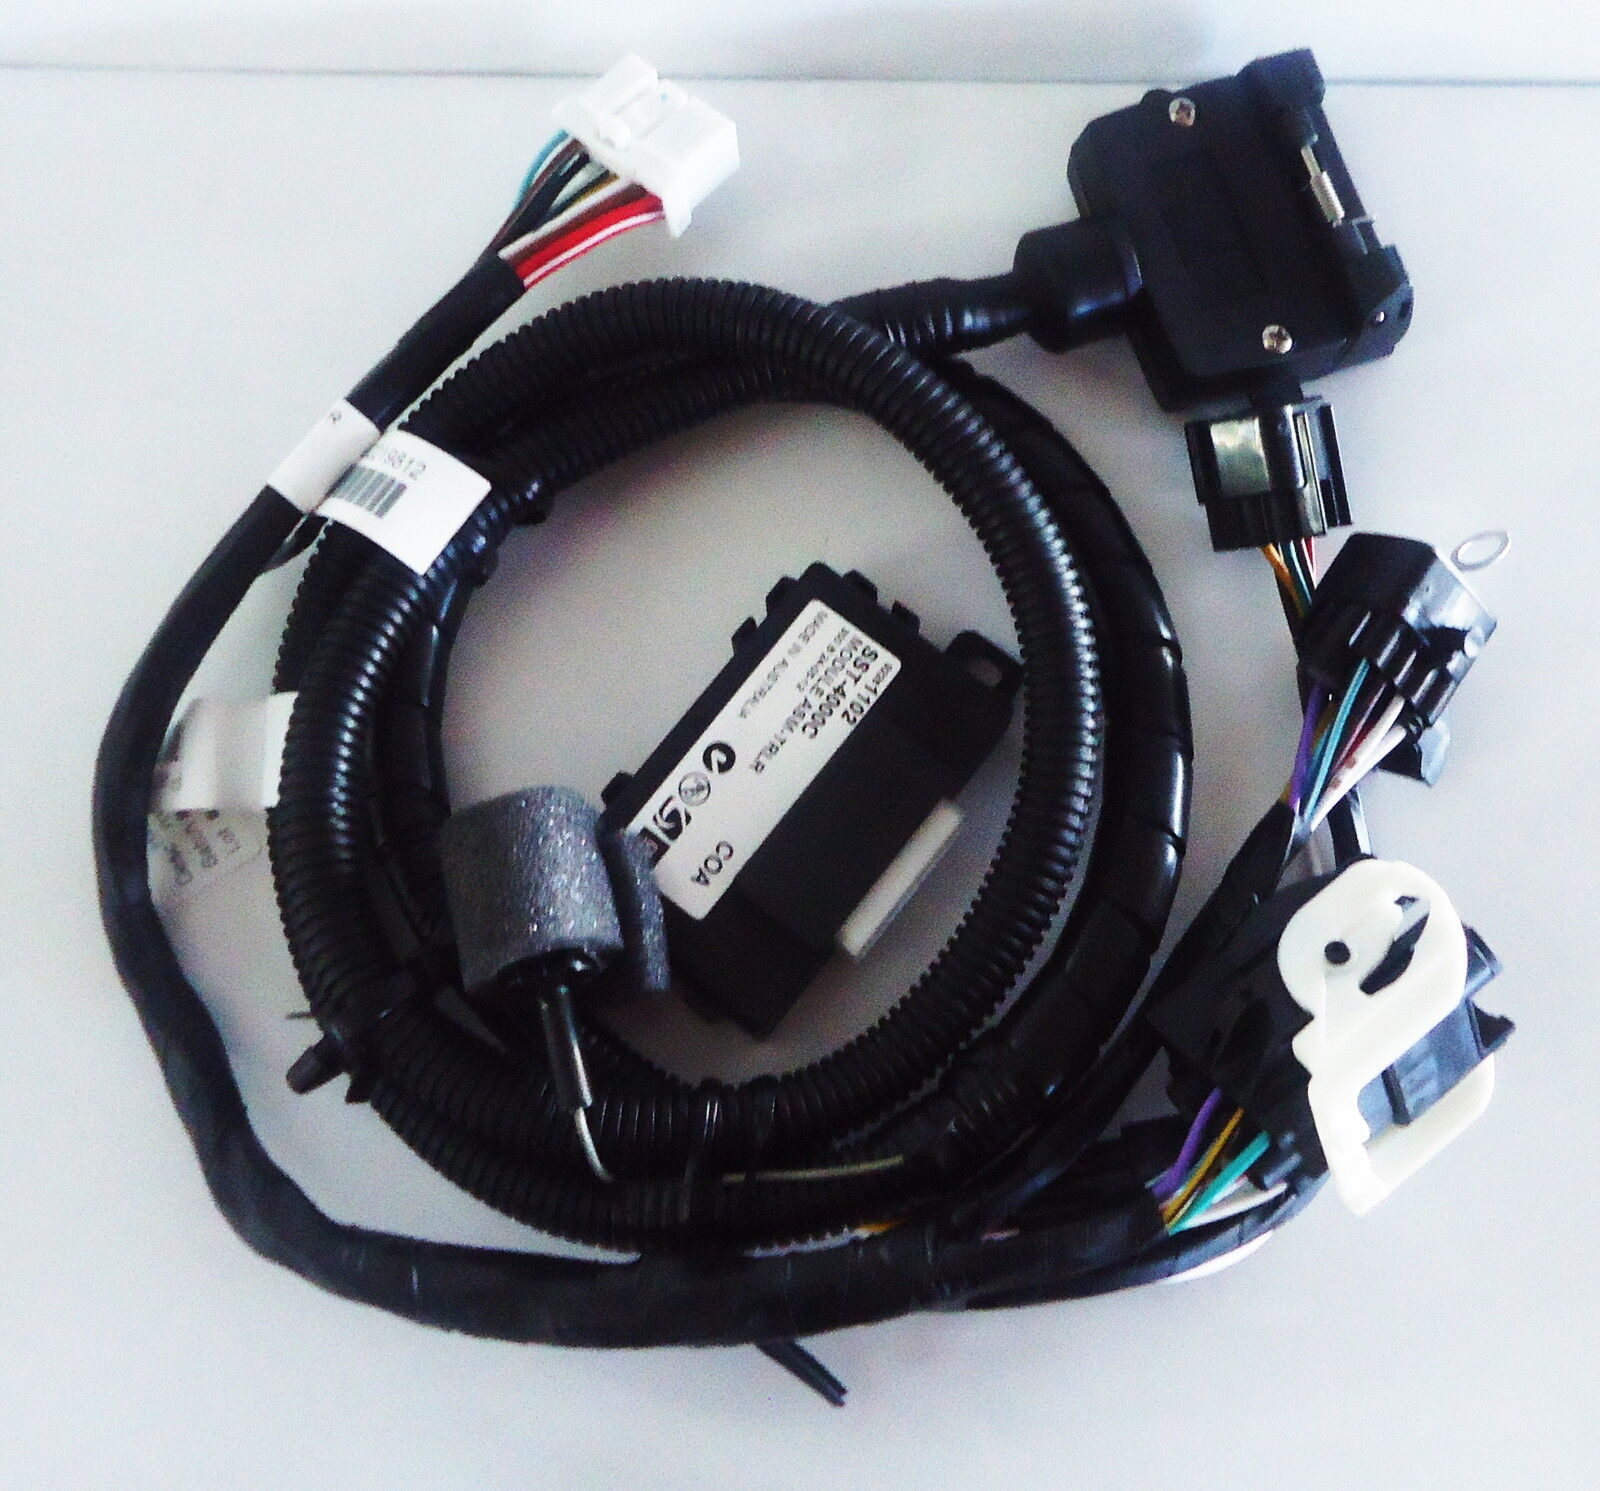 holden genuine new trailer wiring harness suits ve ute commodore mustang wiring harness diagram holden genuine new trailer wiring harness suits ve ute commodore 2 of 4 holden genuine new trailer wiring harness